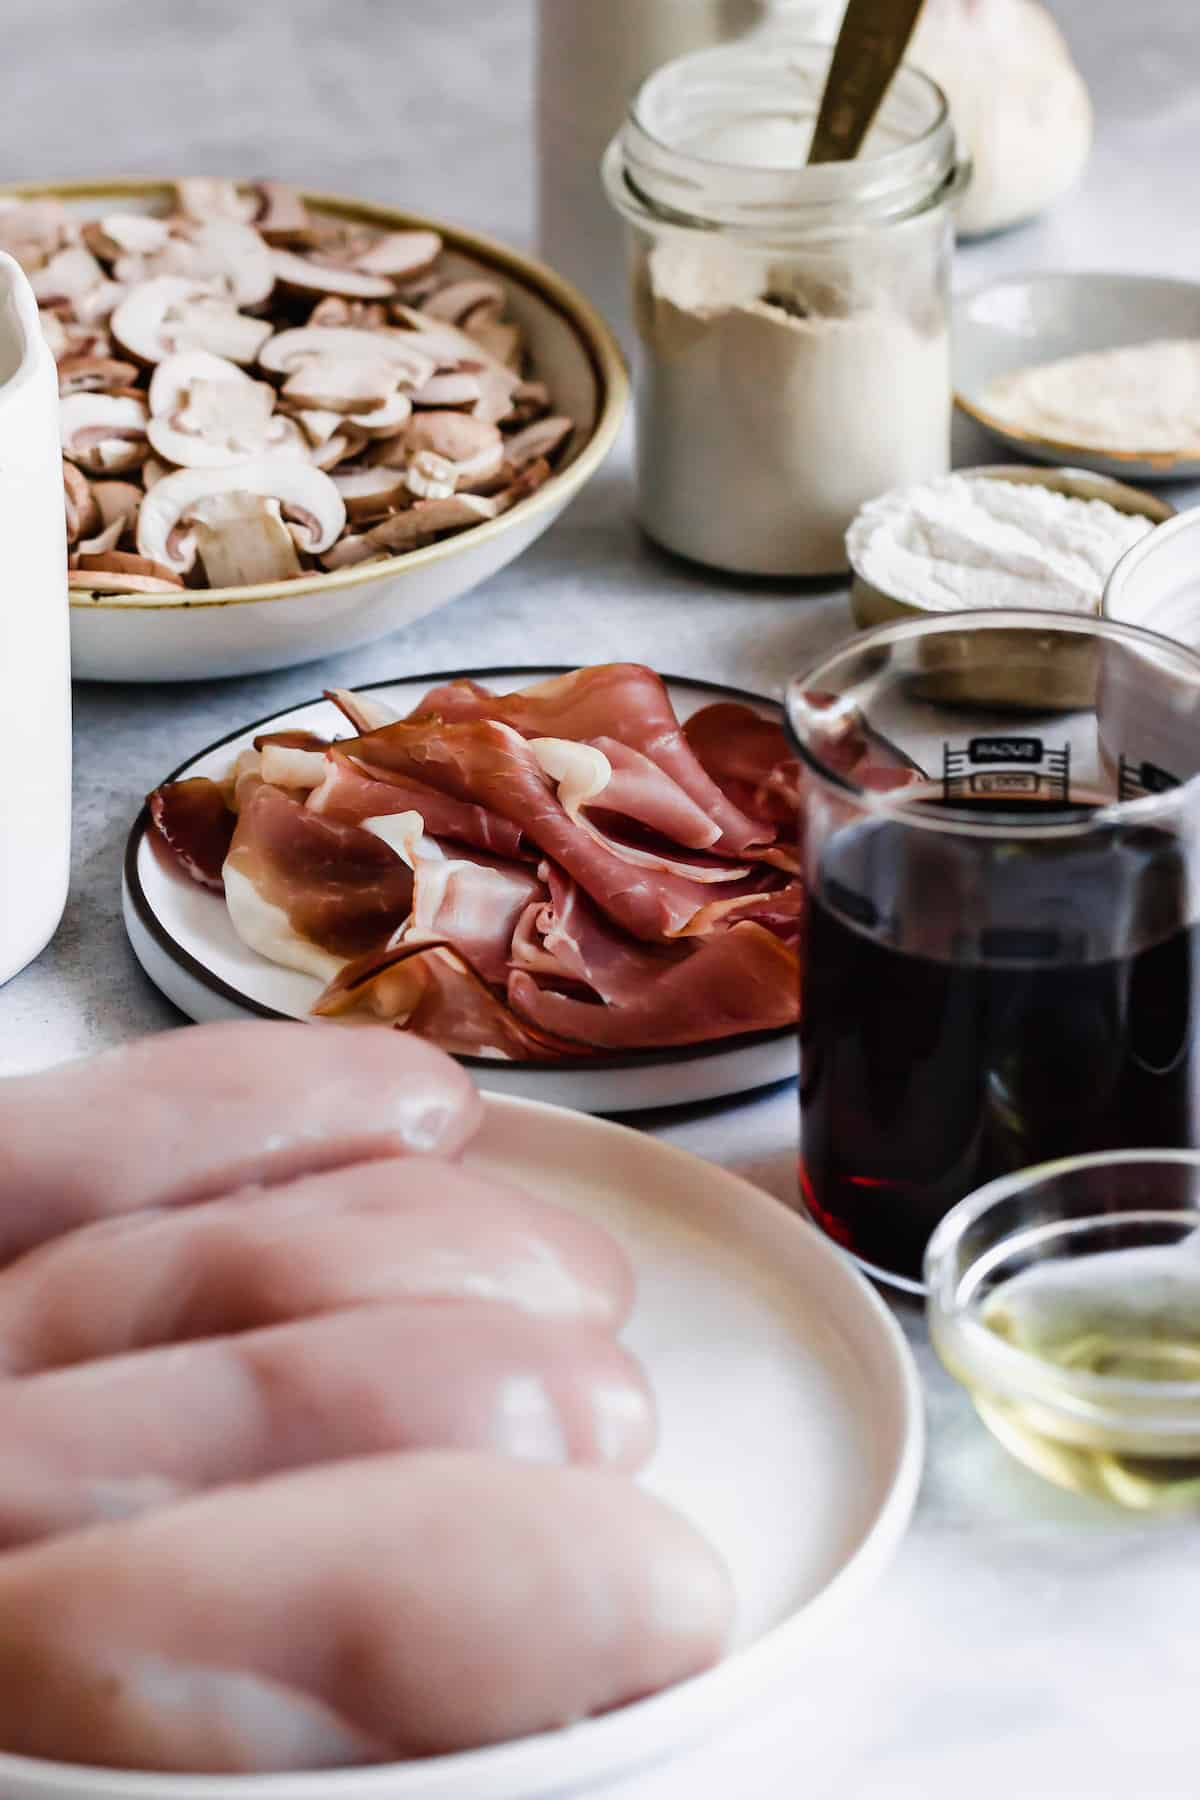 A plate of sliced white mushrooms, a plate of proscuitto, a cup of flour, and a cup of marsala wine.